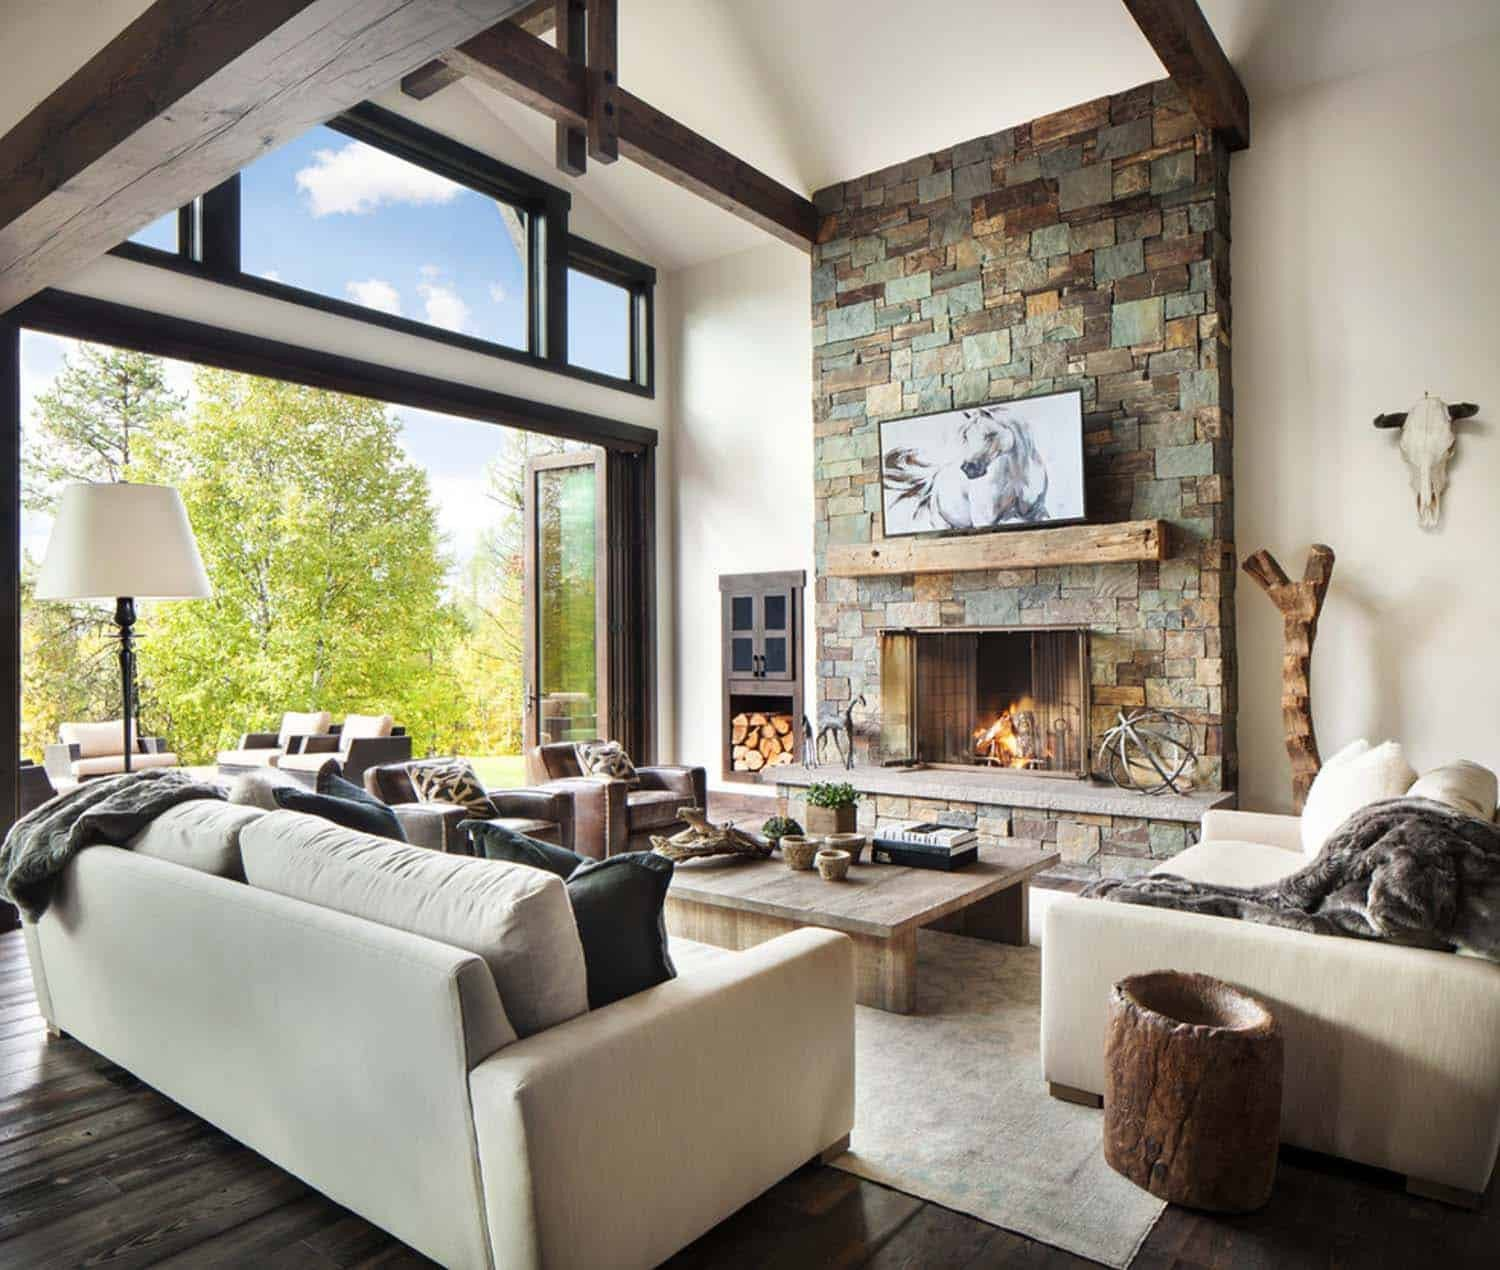 Modern Rustic Living Room Decorating Ideas Unique Rustic Modern Dwelling Nestled In the northern Rocky Mountains